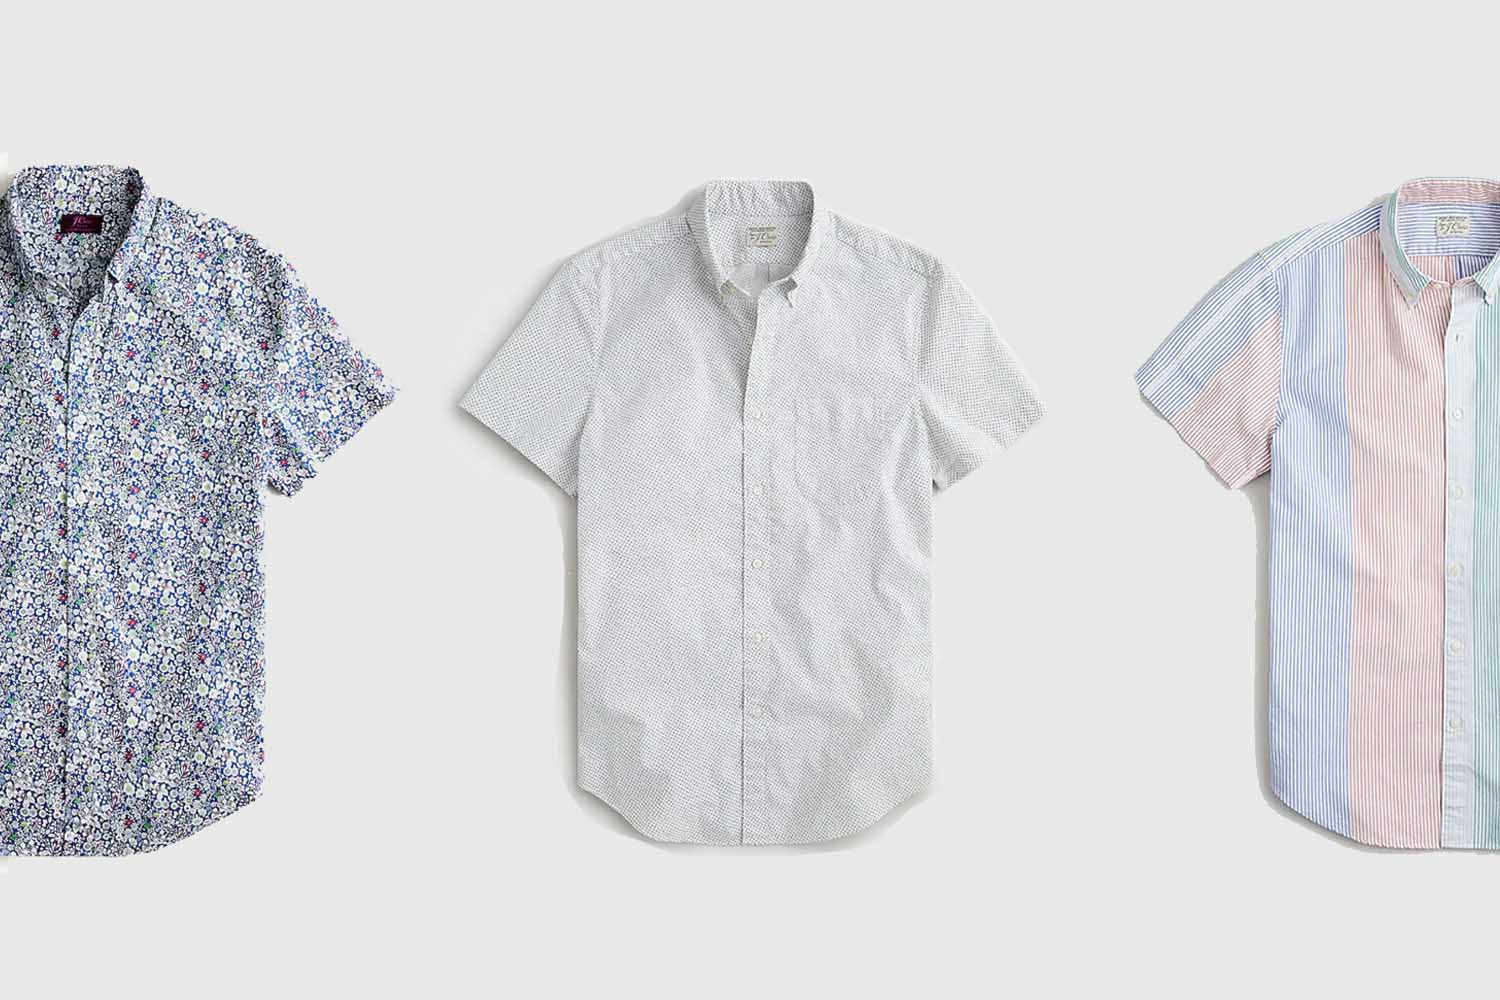 Deal: Take 50% Off Button-Downs and More Warm-Weather Wear at J.Crew